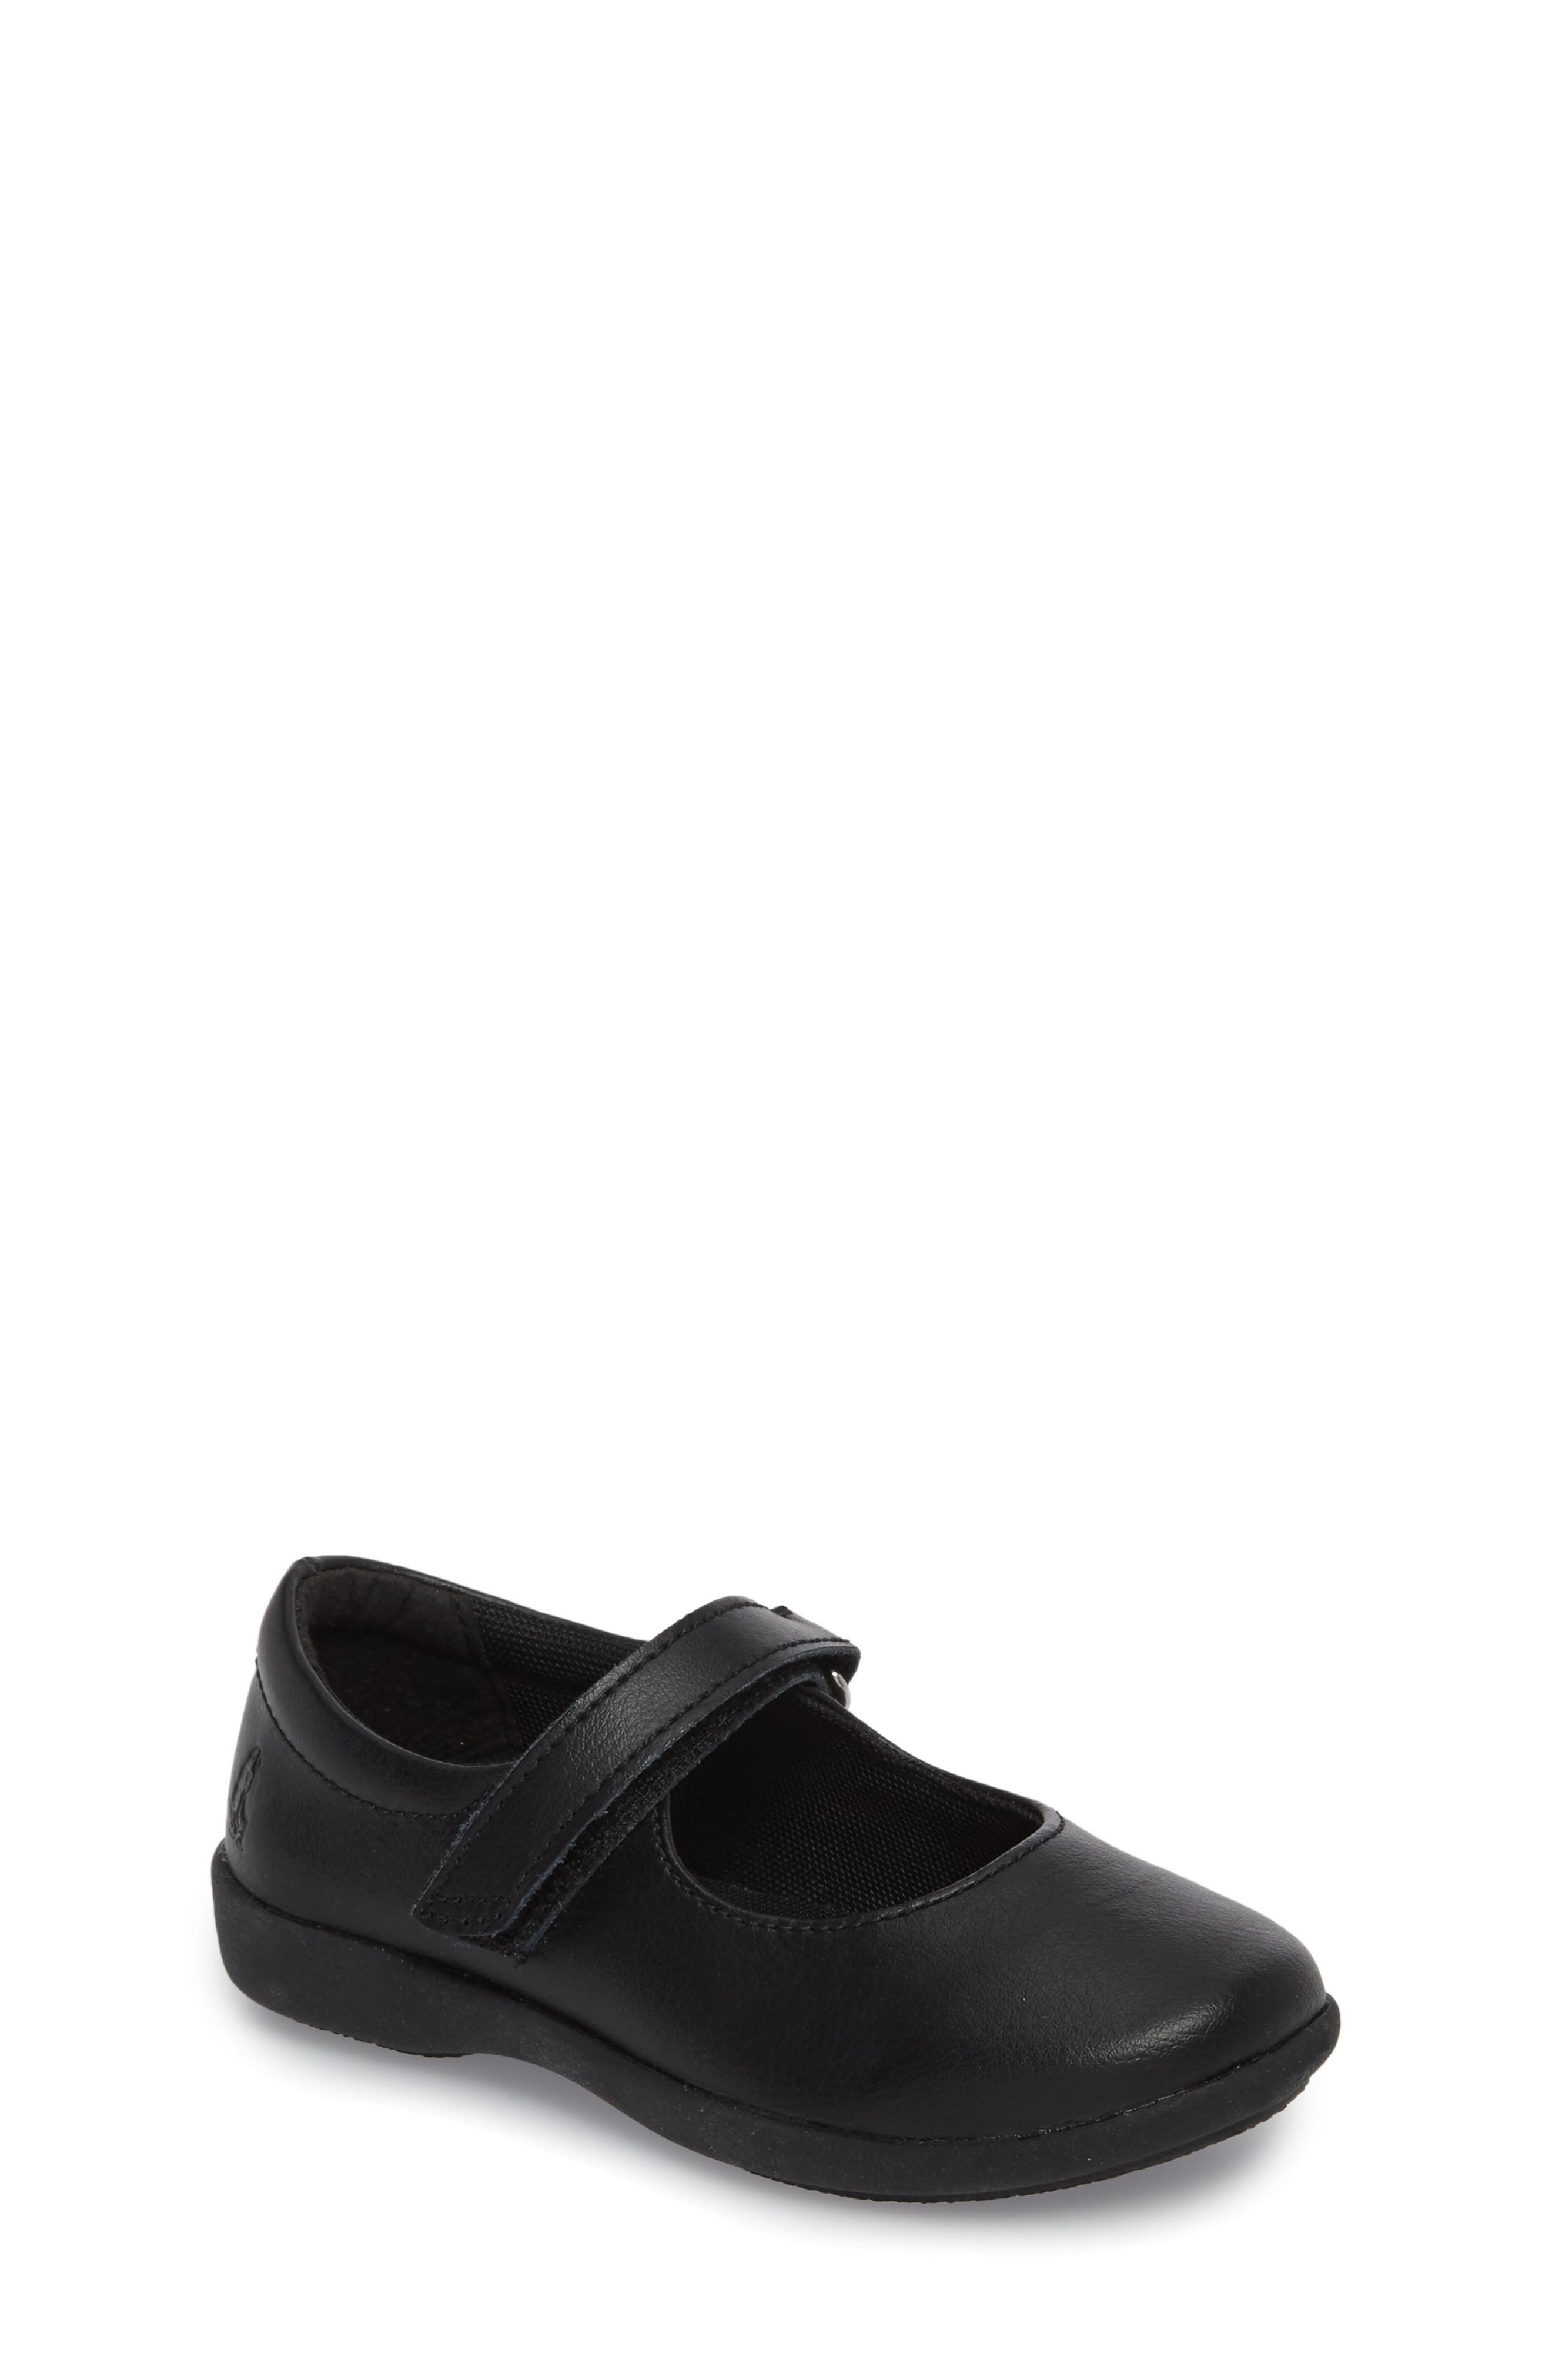 HUSH PUPPIES<SUP>®</SUP> Lexi Mary Jane Flat, Main, color, BLACK LEATHER